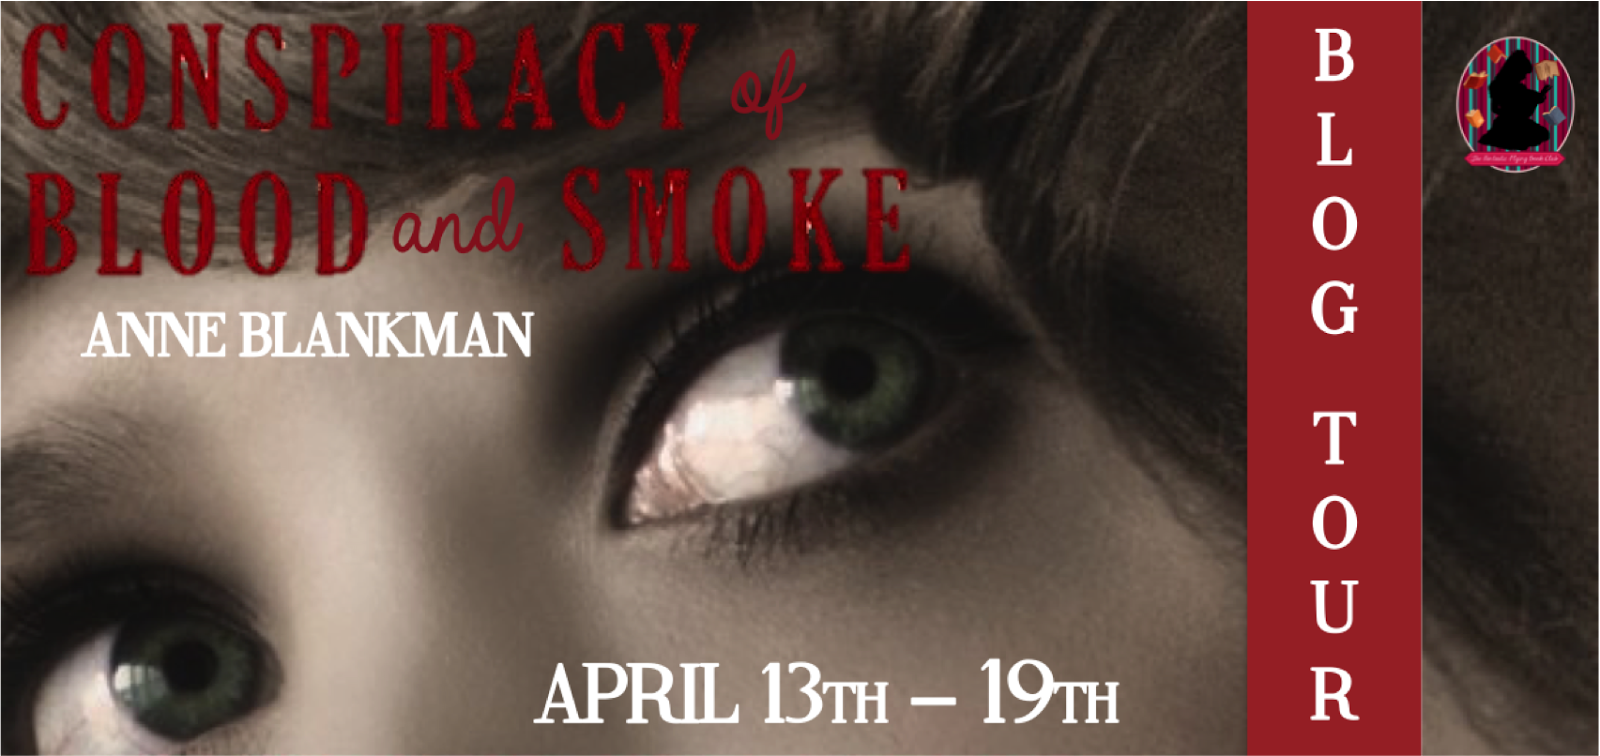 http://fantasticflyingbookclub.blogspot.com/2015/02/tour-schedule-conspiracy-of-blood-and.html